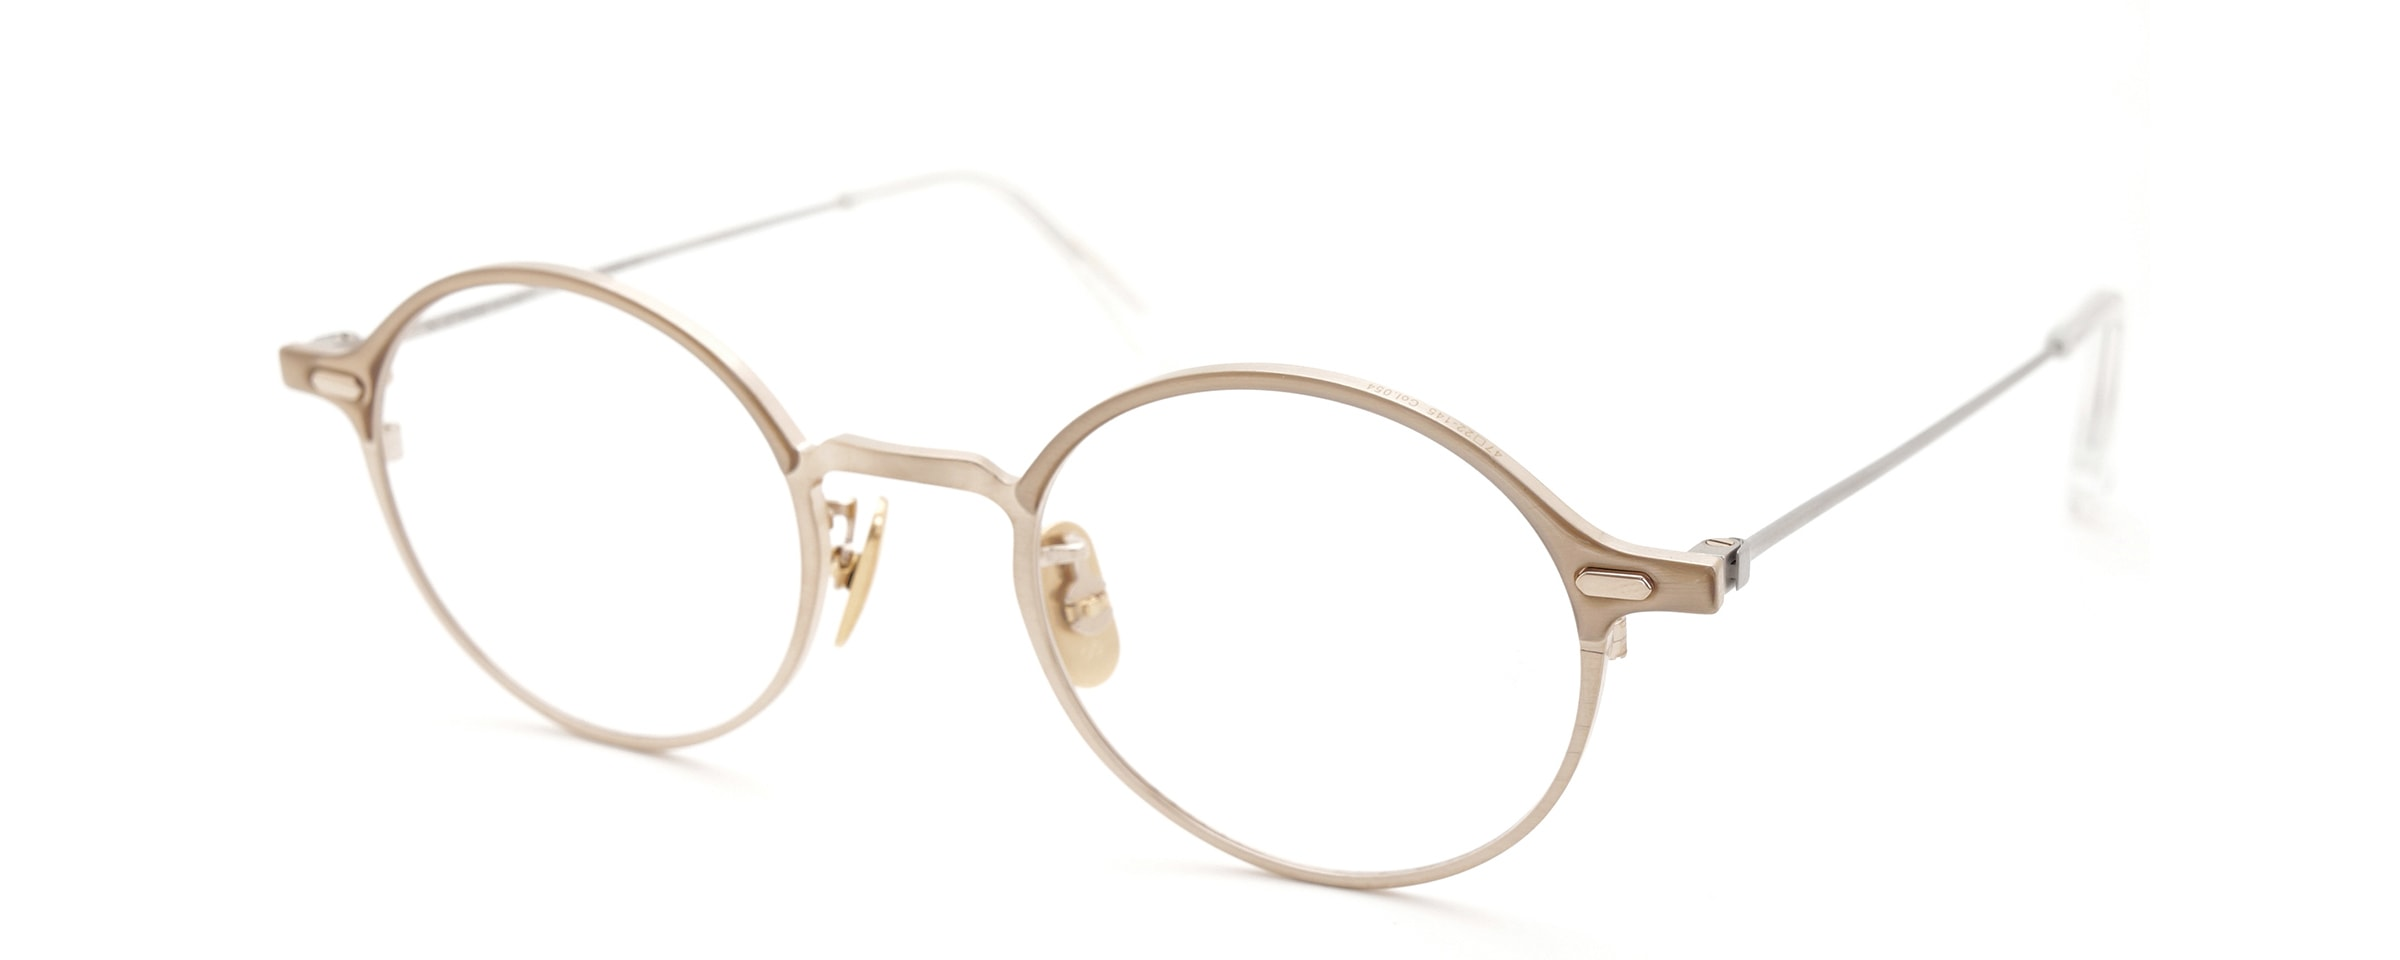 OG × OLIVER GOLDSMITH Re:RETRO SIX 47 リ:レトロシックス